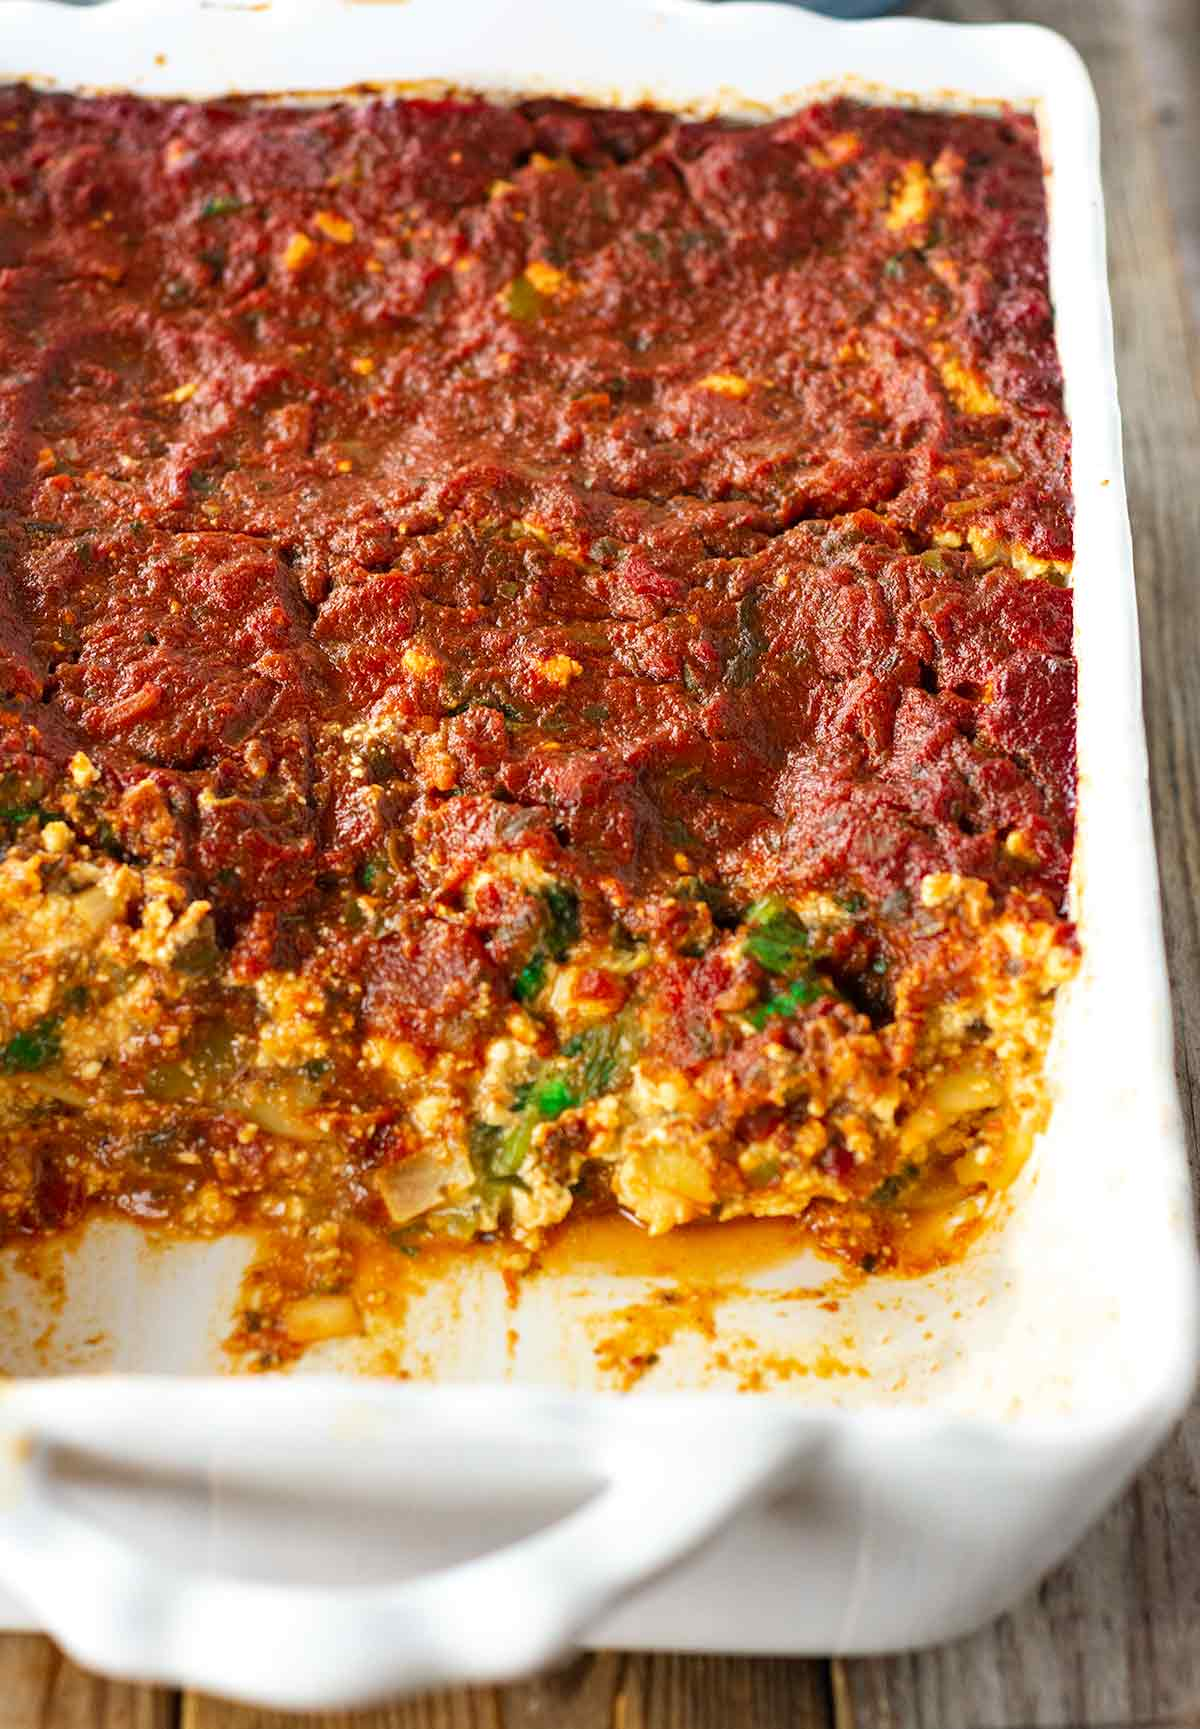 overlay lasagna in a white casserole pan on a wooden backgroun